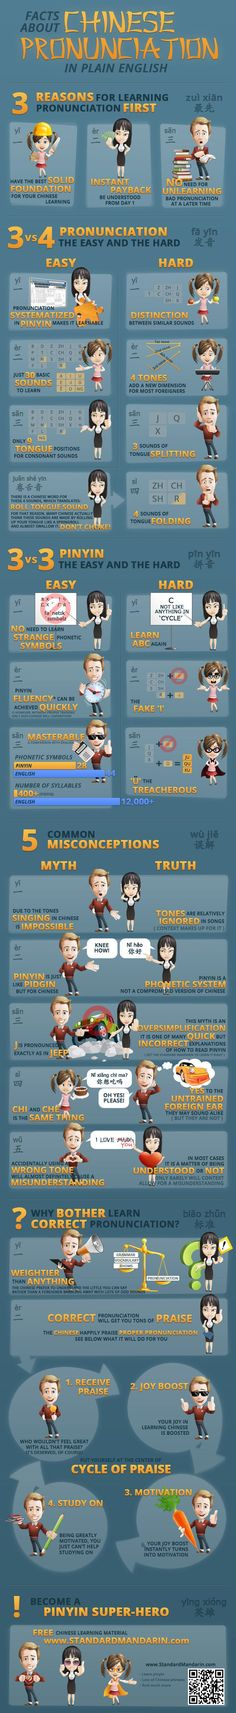 Educational infographic : Facts About Chinese Pronunciation and Pinyin Infographic